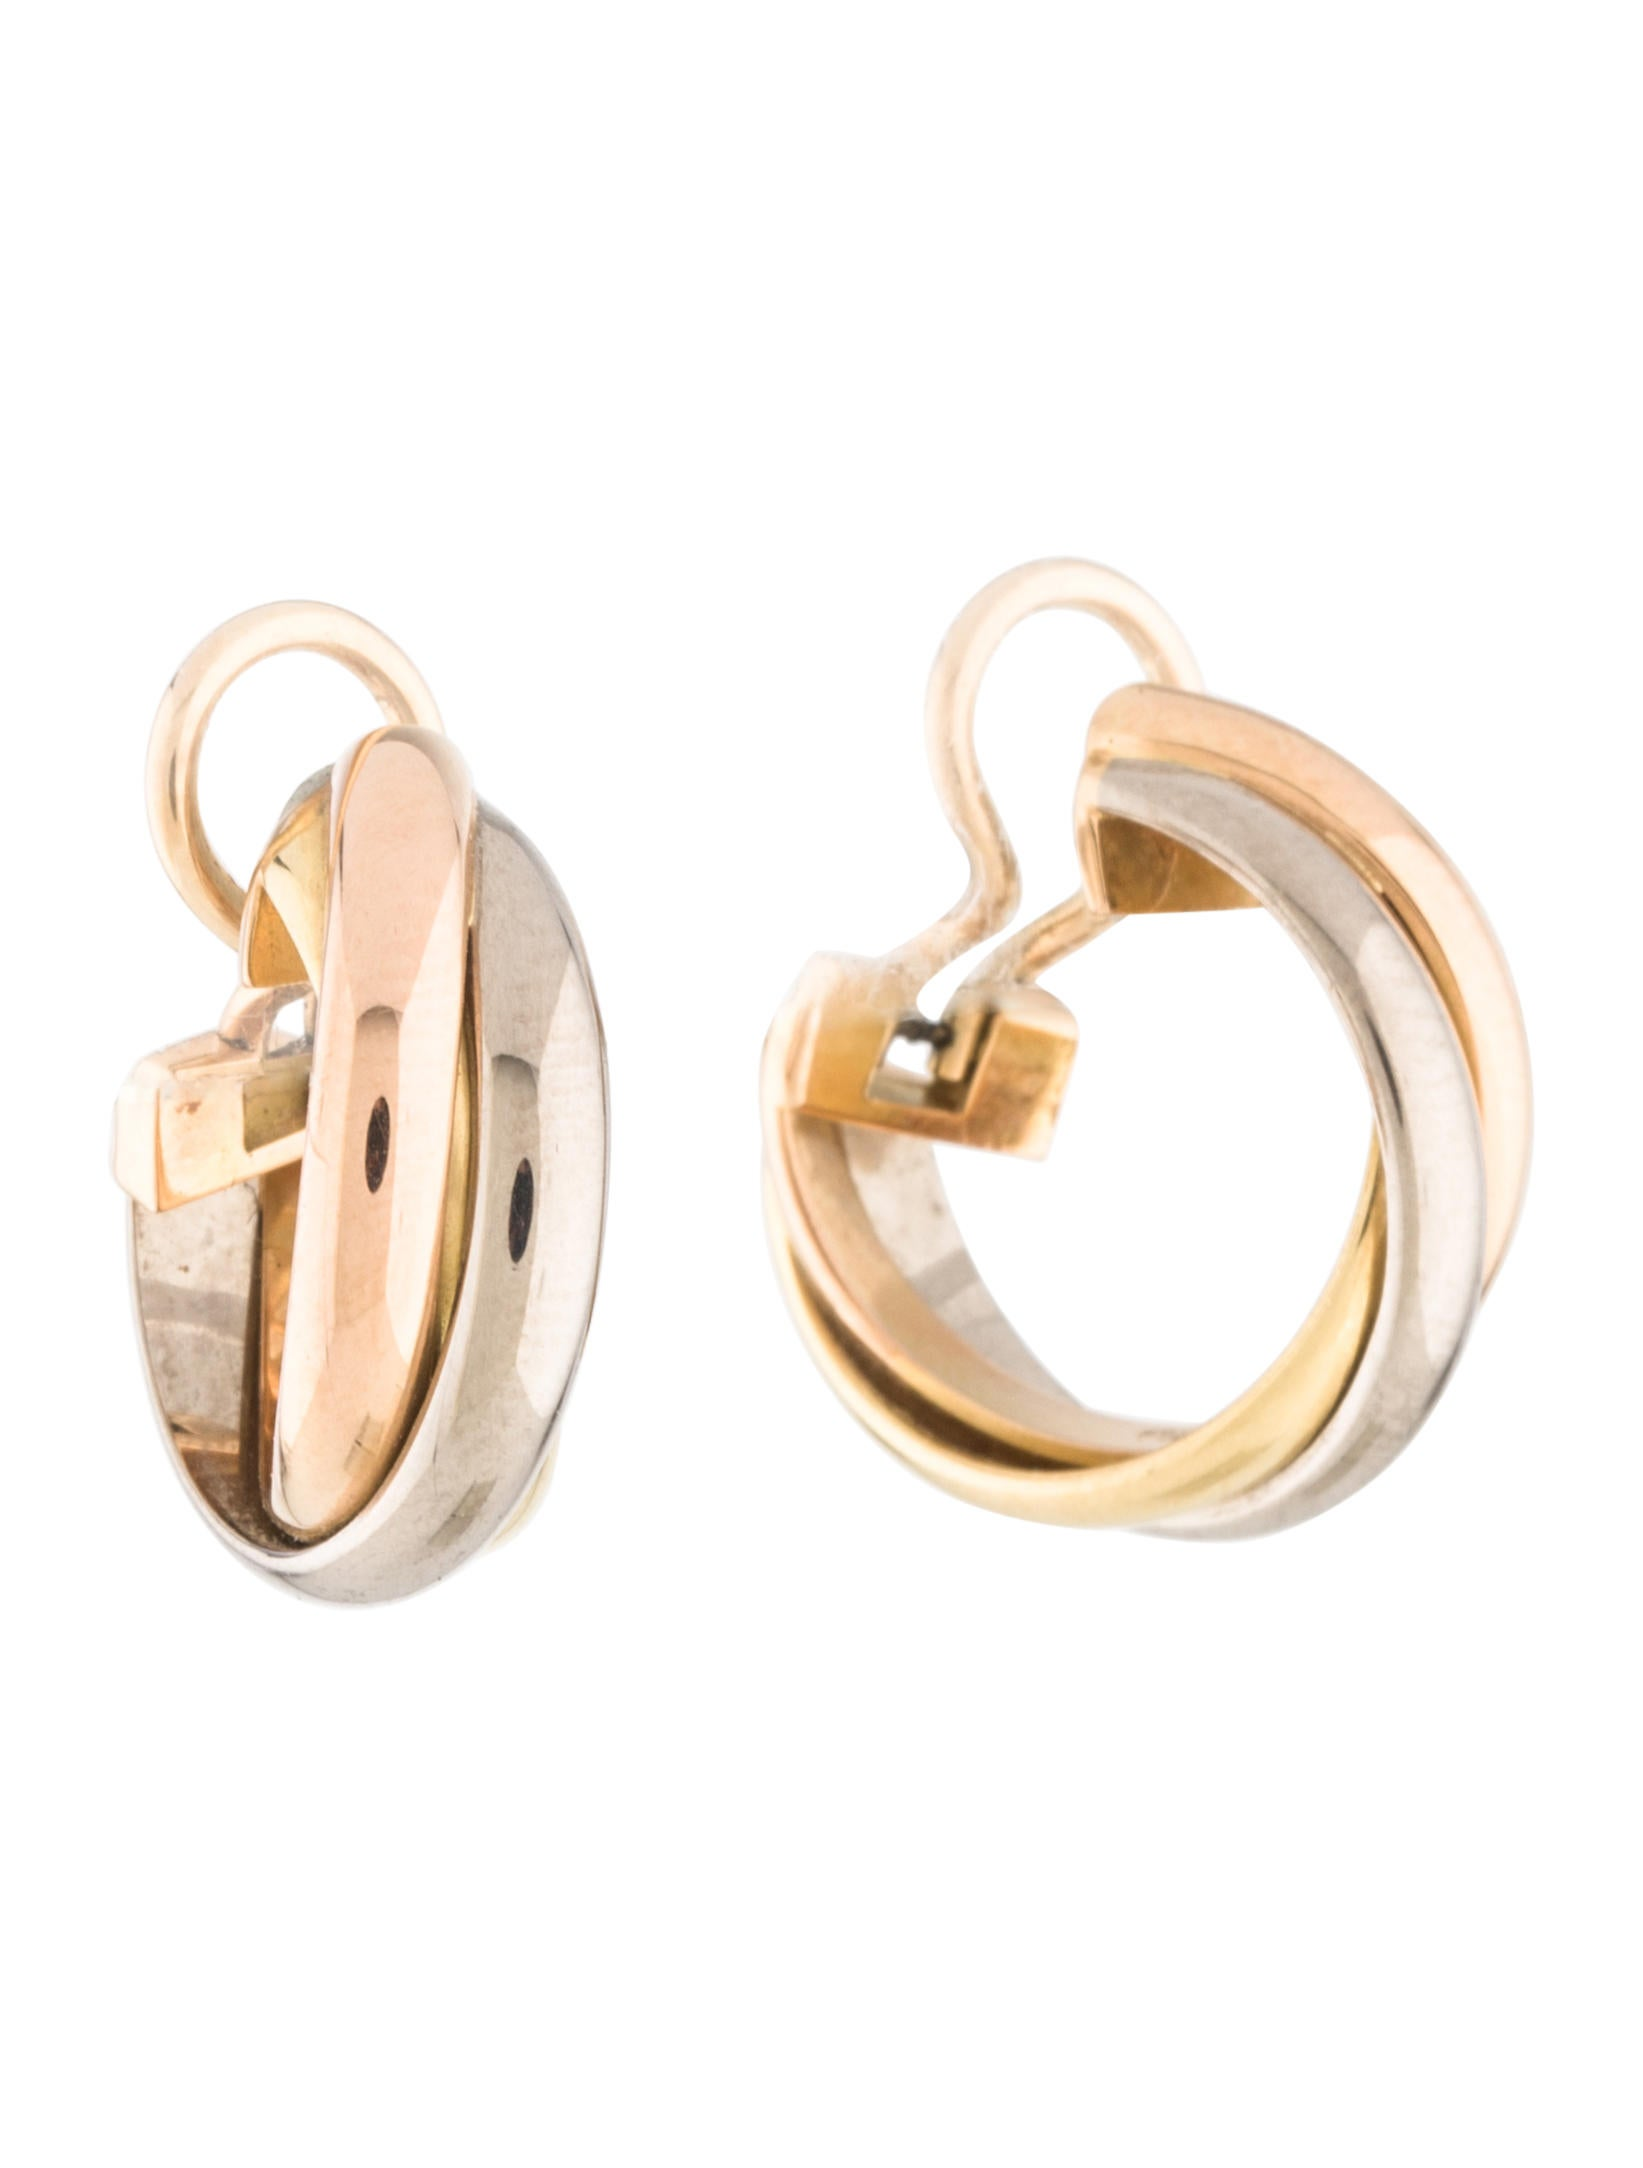 trinity de enlarged hoop earrings cartier products the jewelry realreal